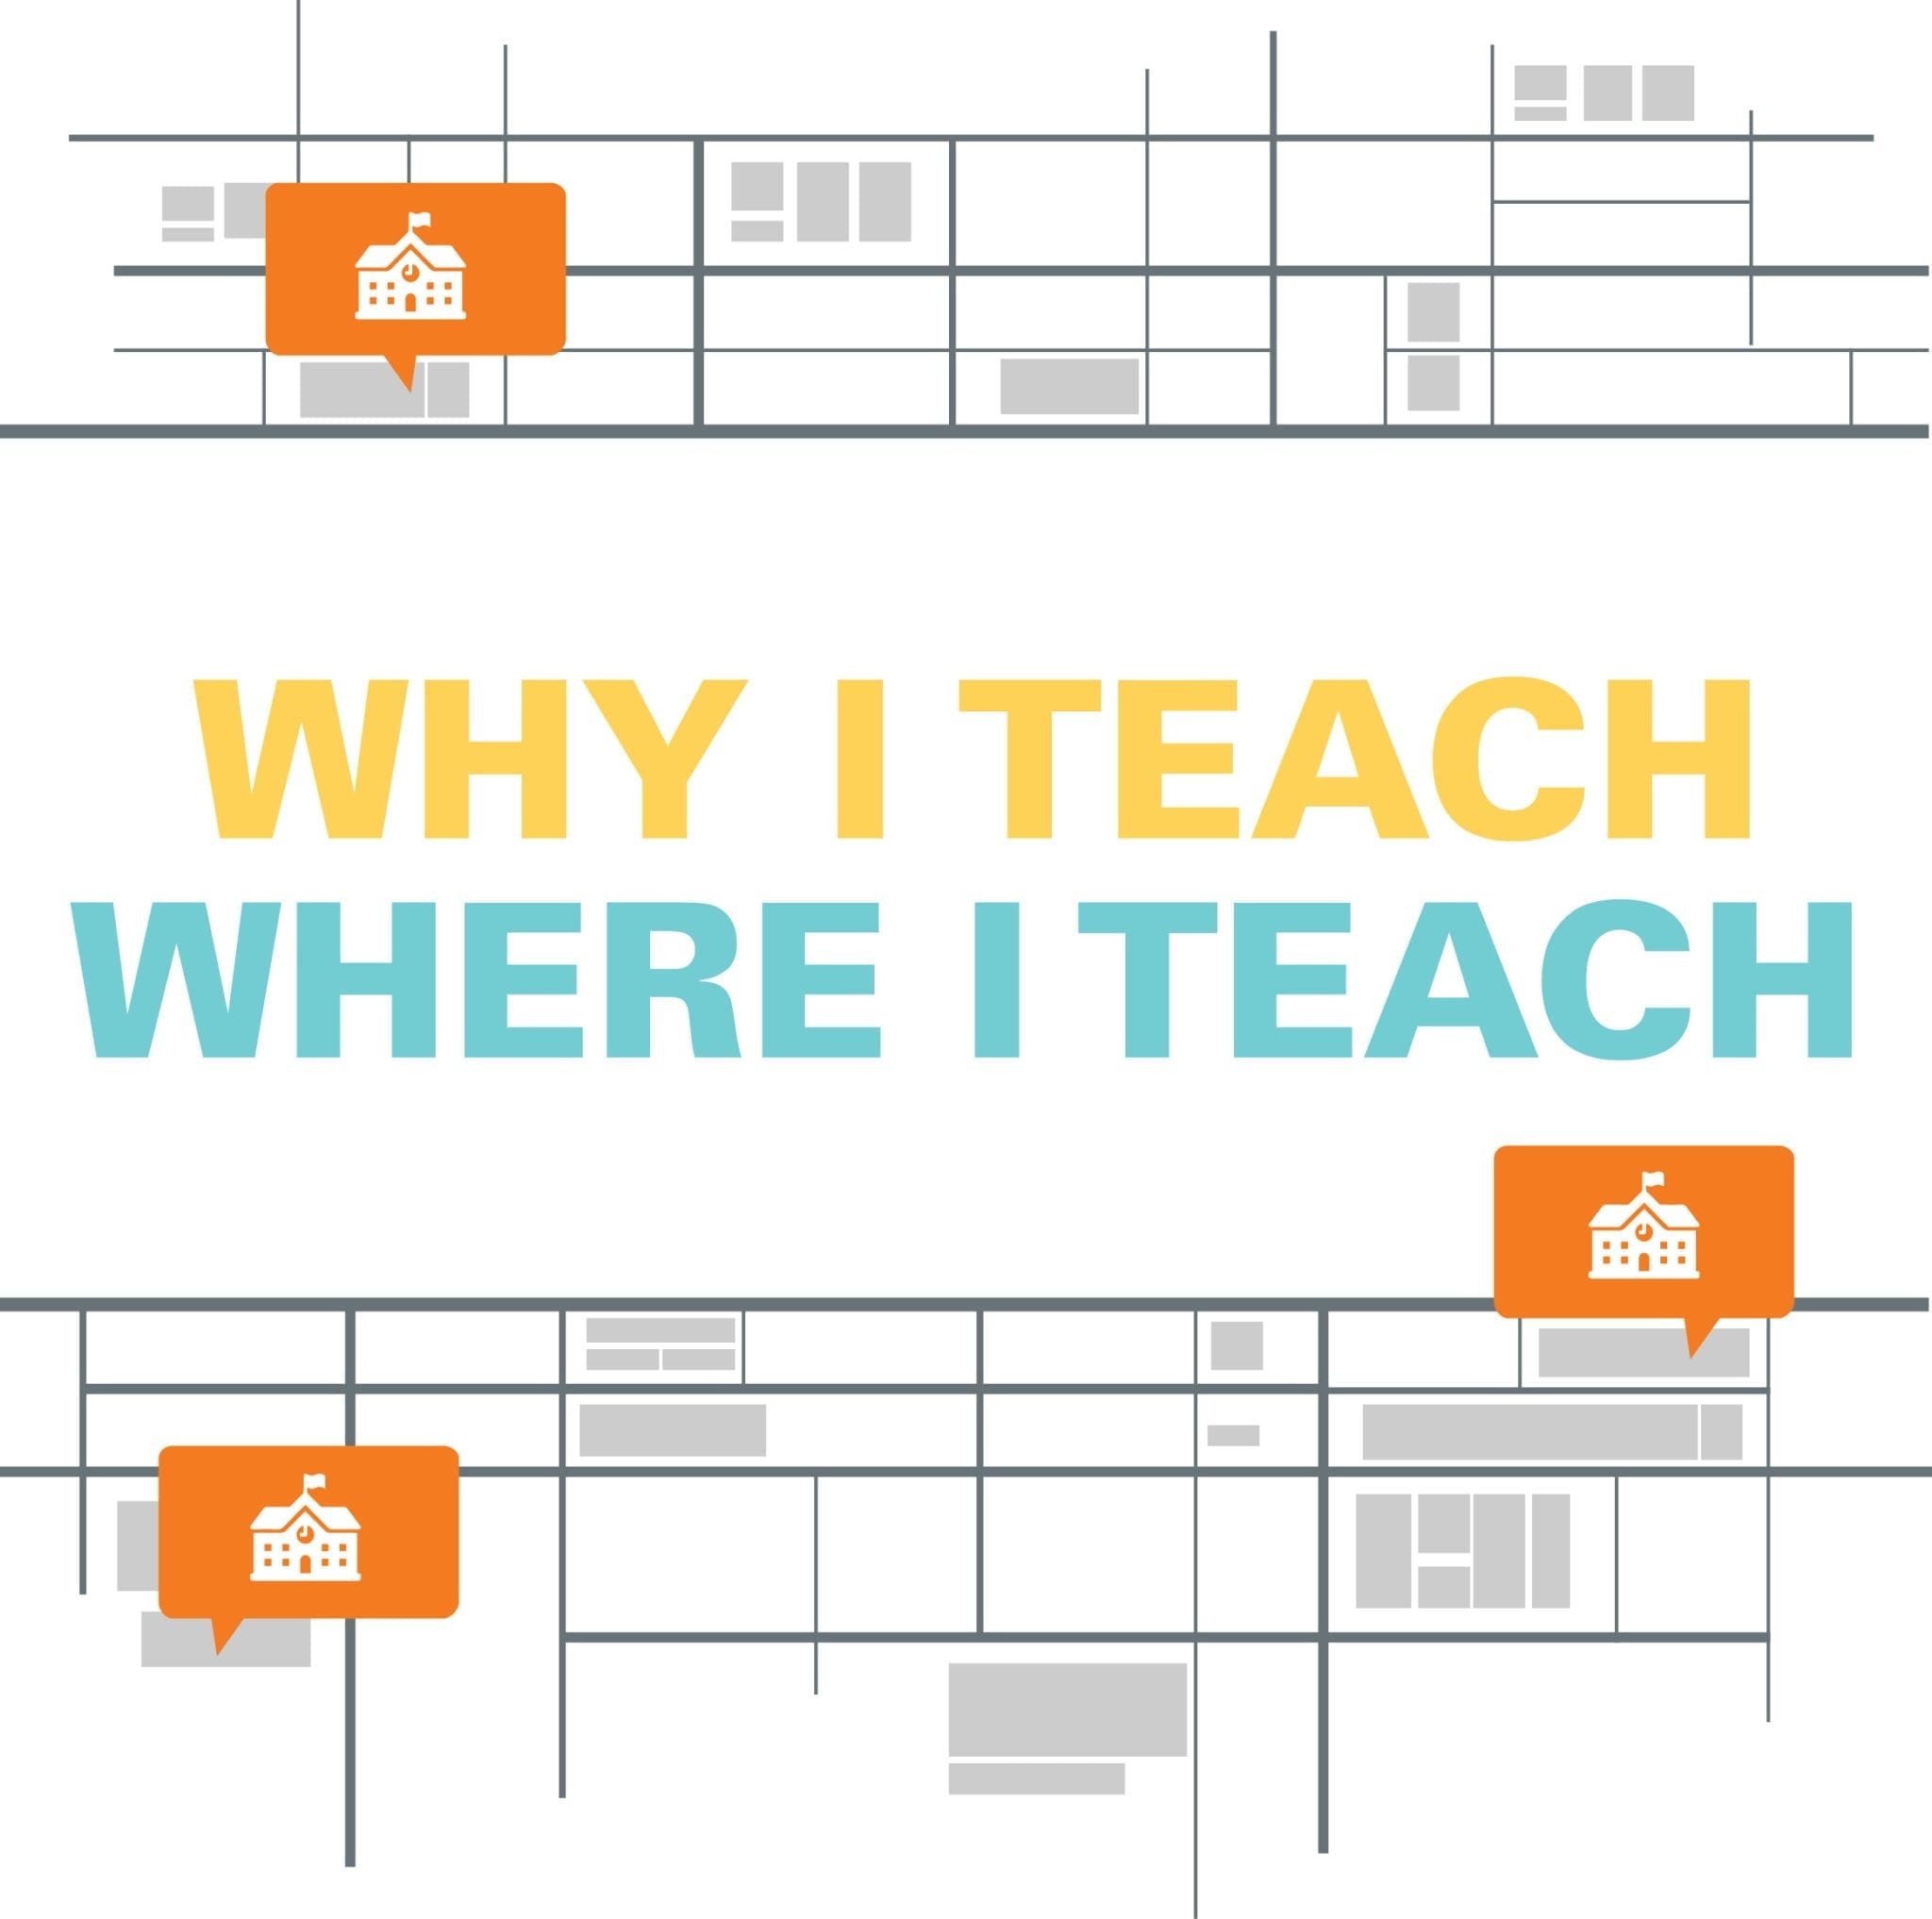 The Next Educational Equity >> Why I Teach Where I Teach To Fight For Educational Equity The